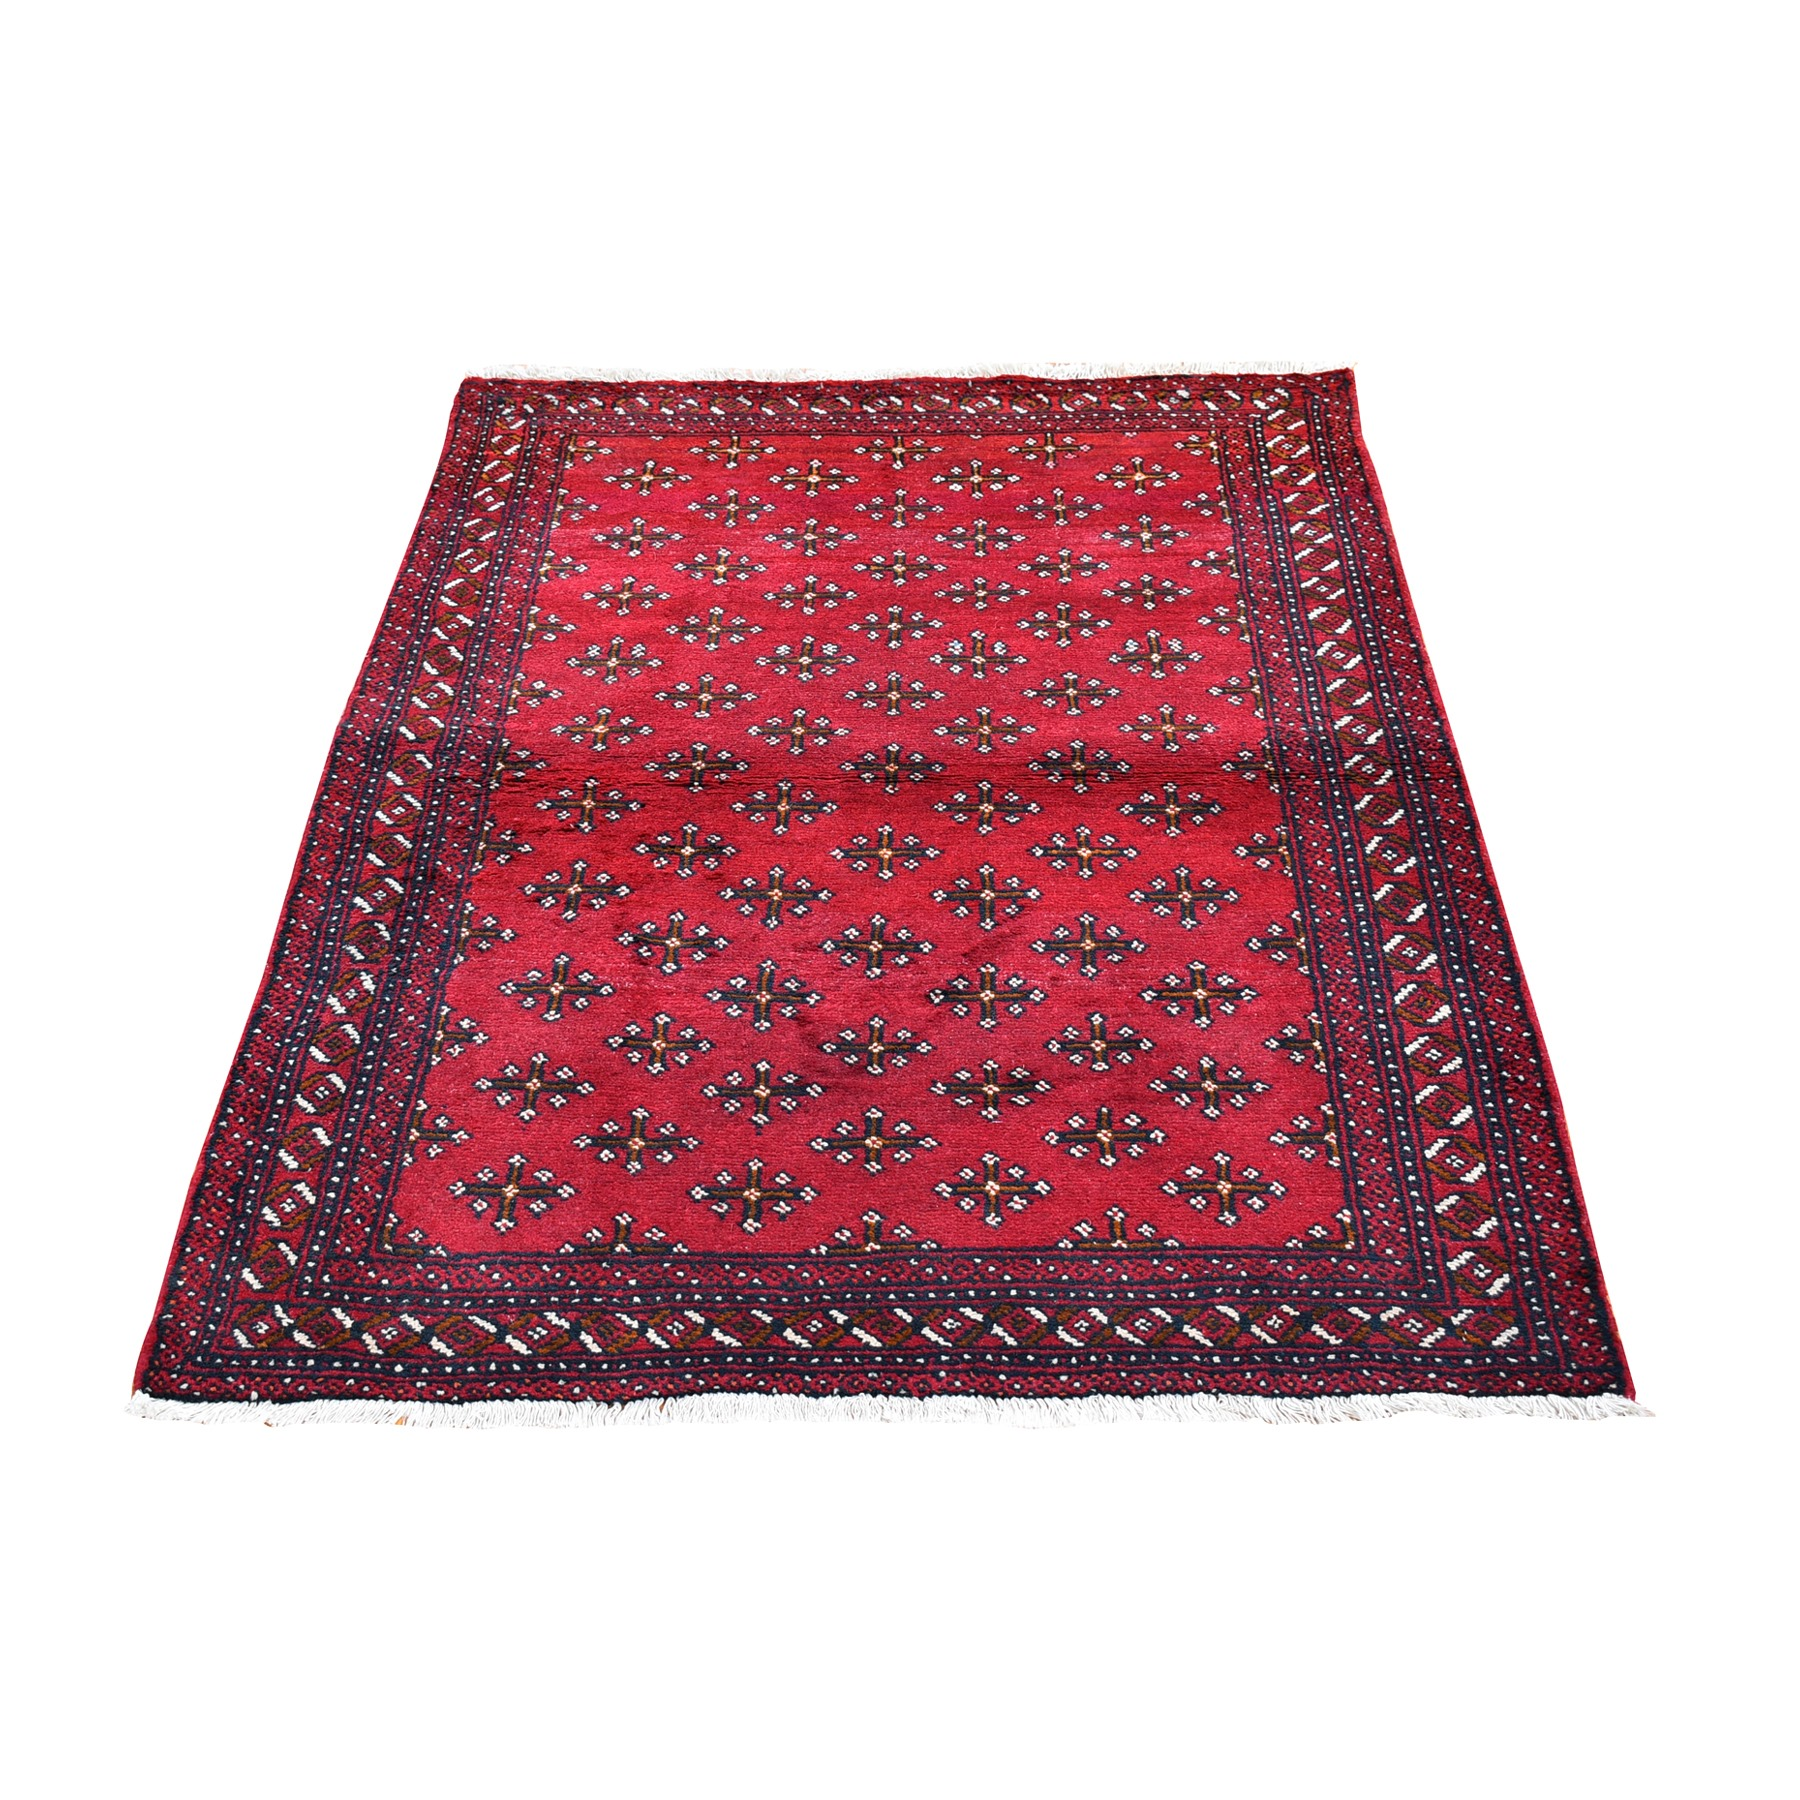 "3'4""x5'1"" Vintage Persian Baluch with Repetitive Design Pure Wool Hand Knotted Oriental Rug"